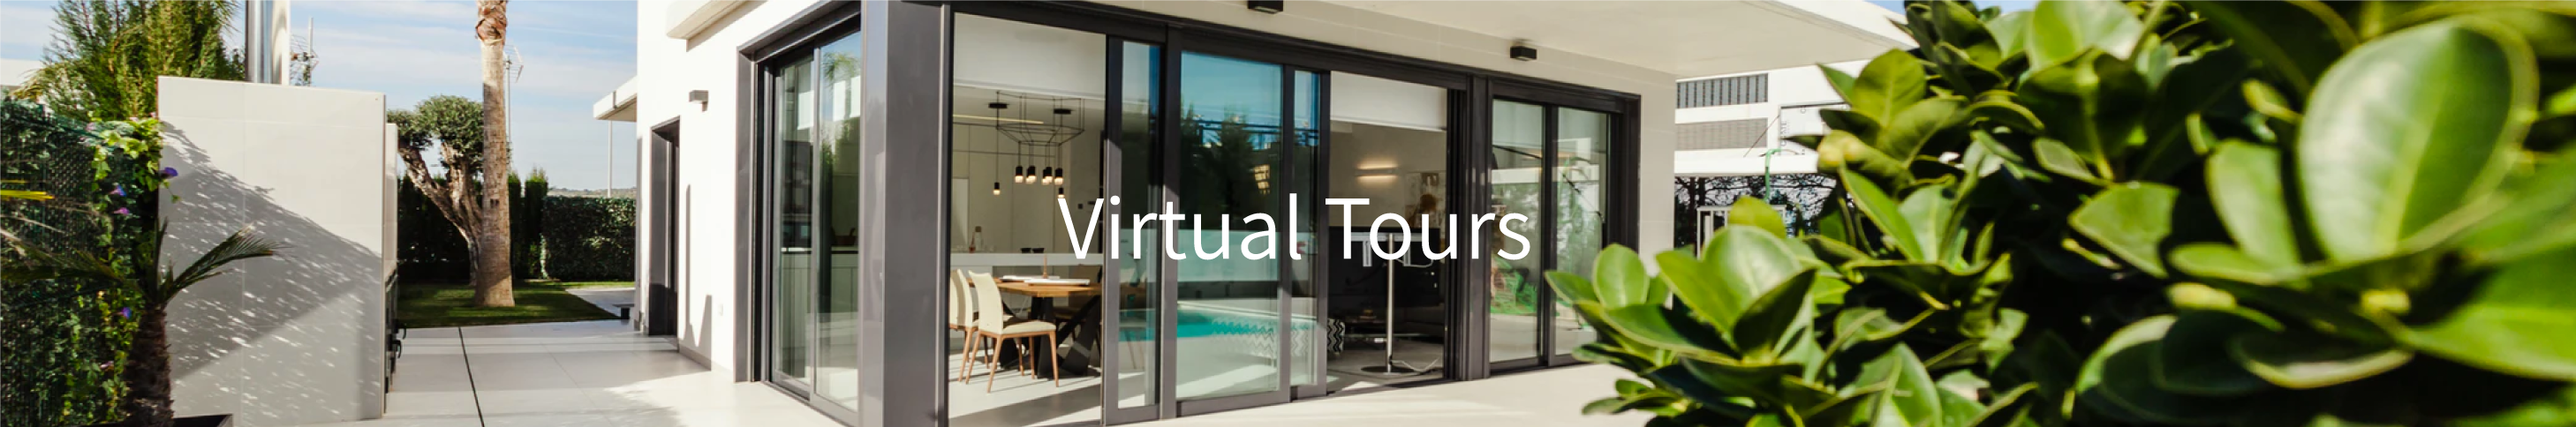 Virtual Tours - Xorix Media